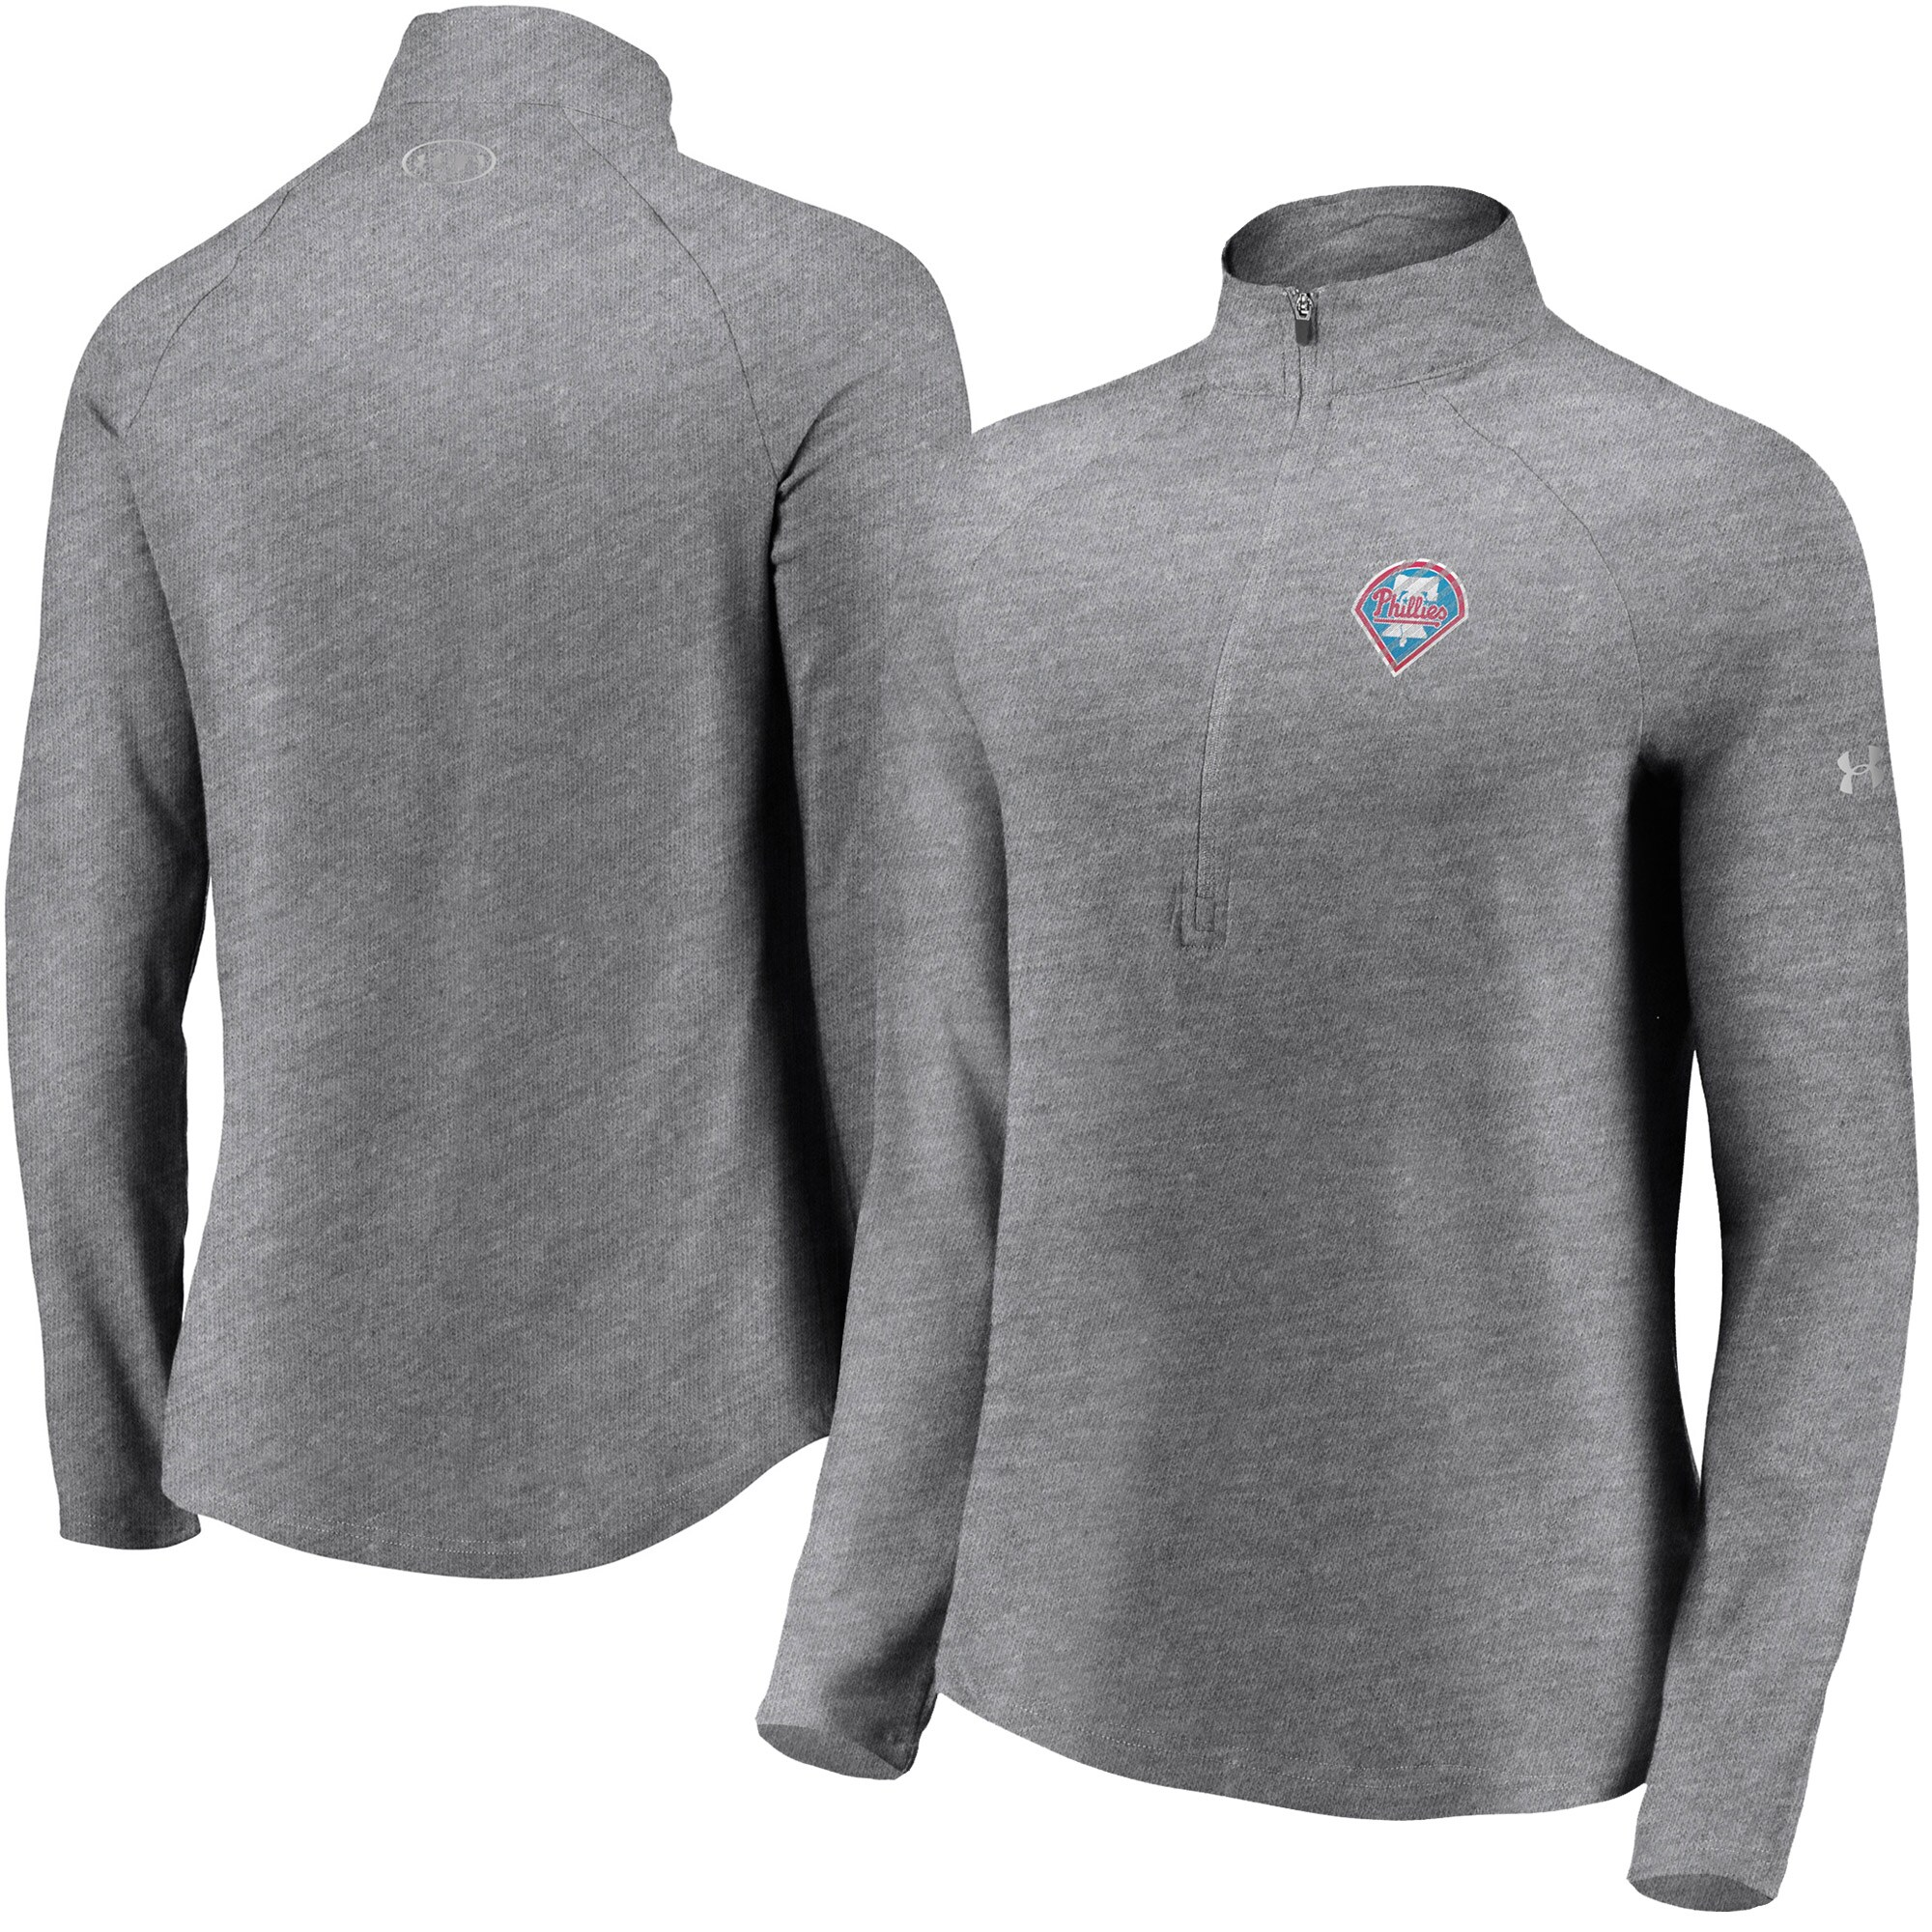 Philadelphia Phillies Under Armour Women's Passion Alternate Performance Tri-Blend Raglan Half-Zip Pullover Jacket - Heathered Gray